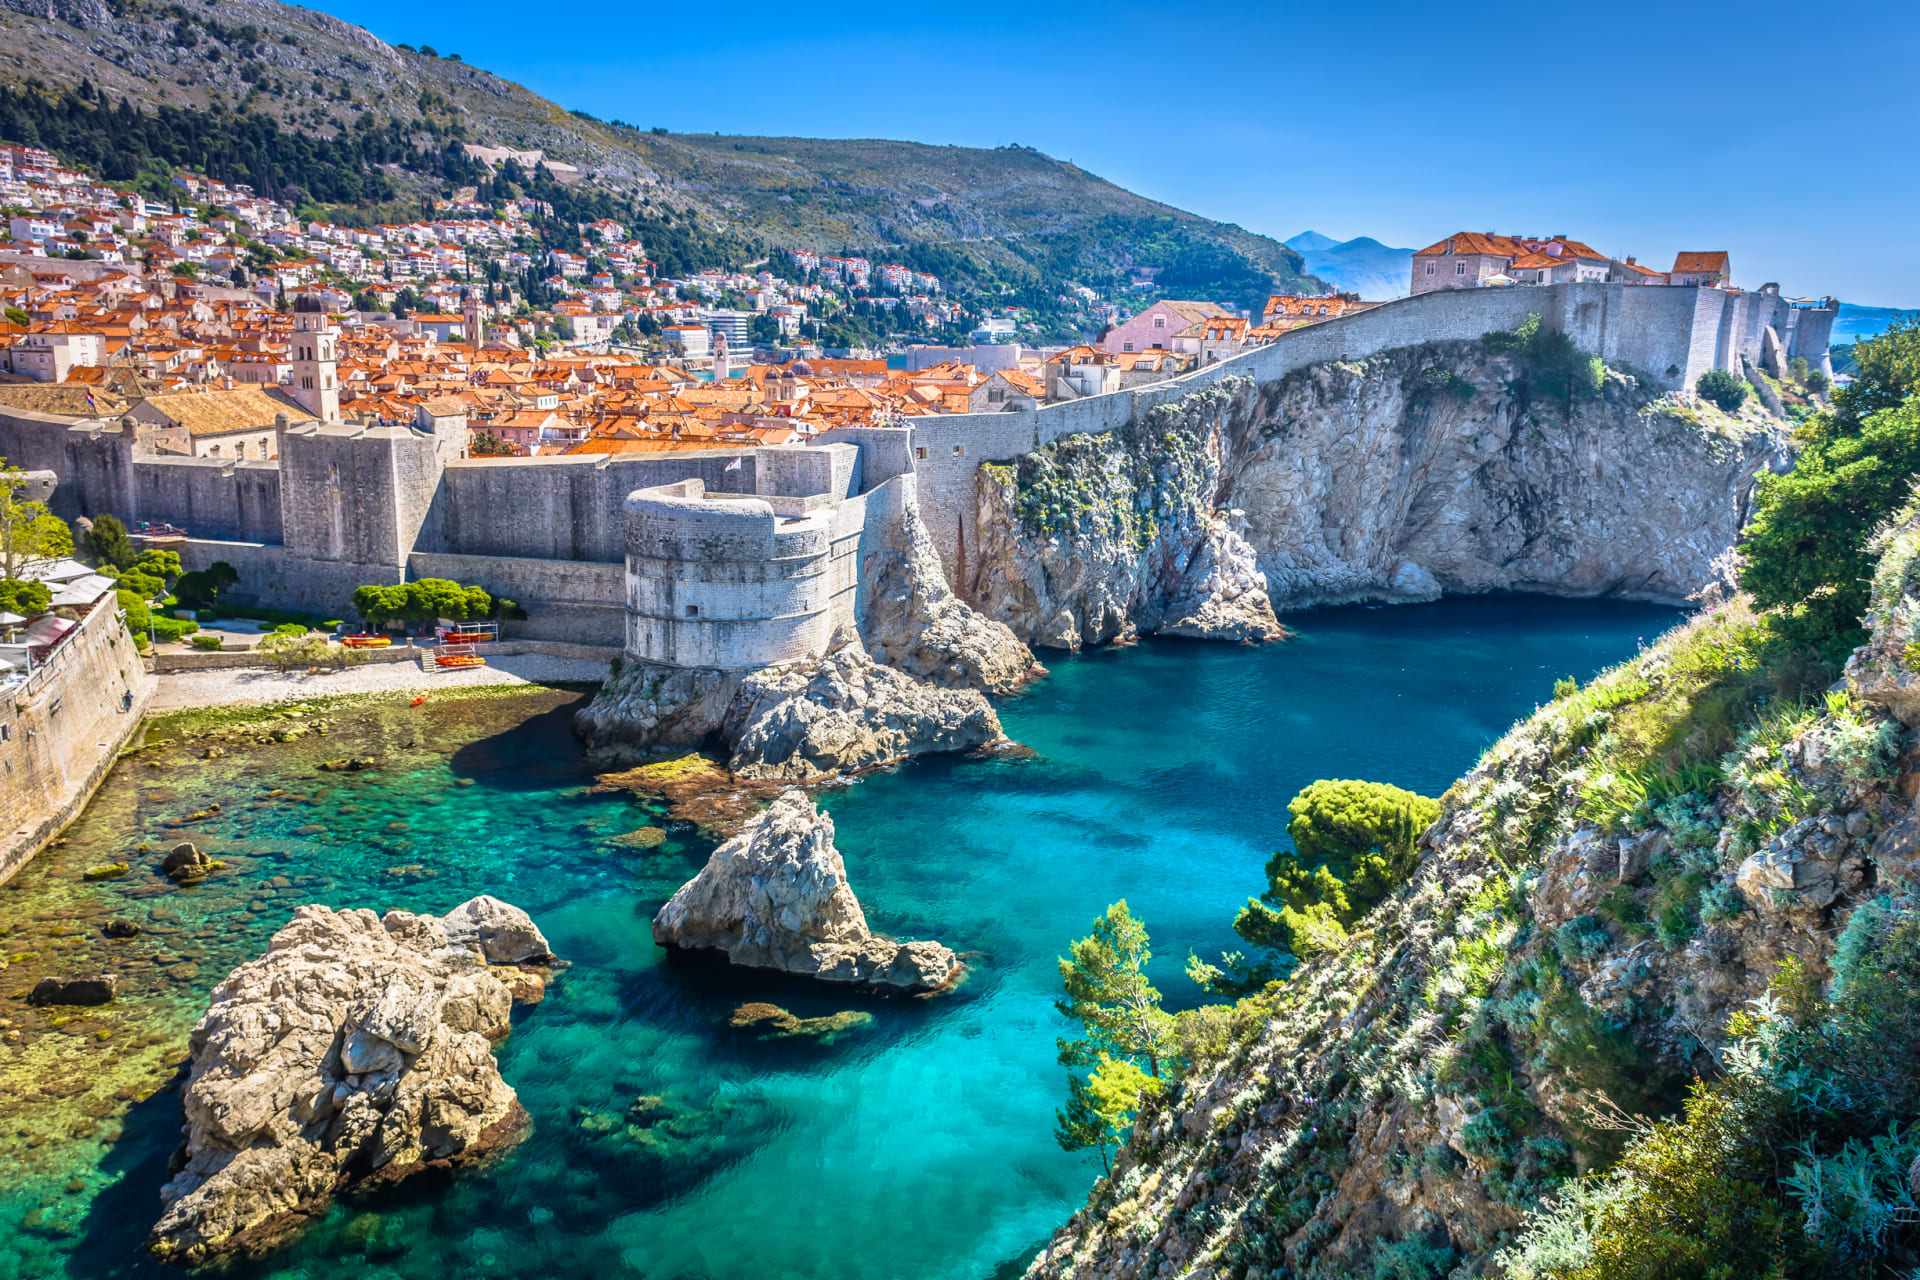 Dubrovnik - Old Town Wall Walk, Part 2 (south side)